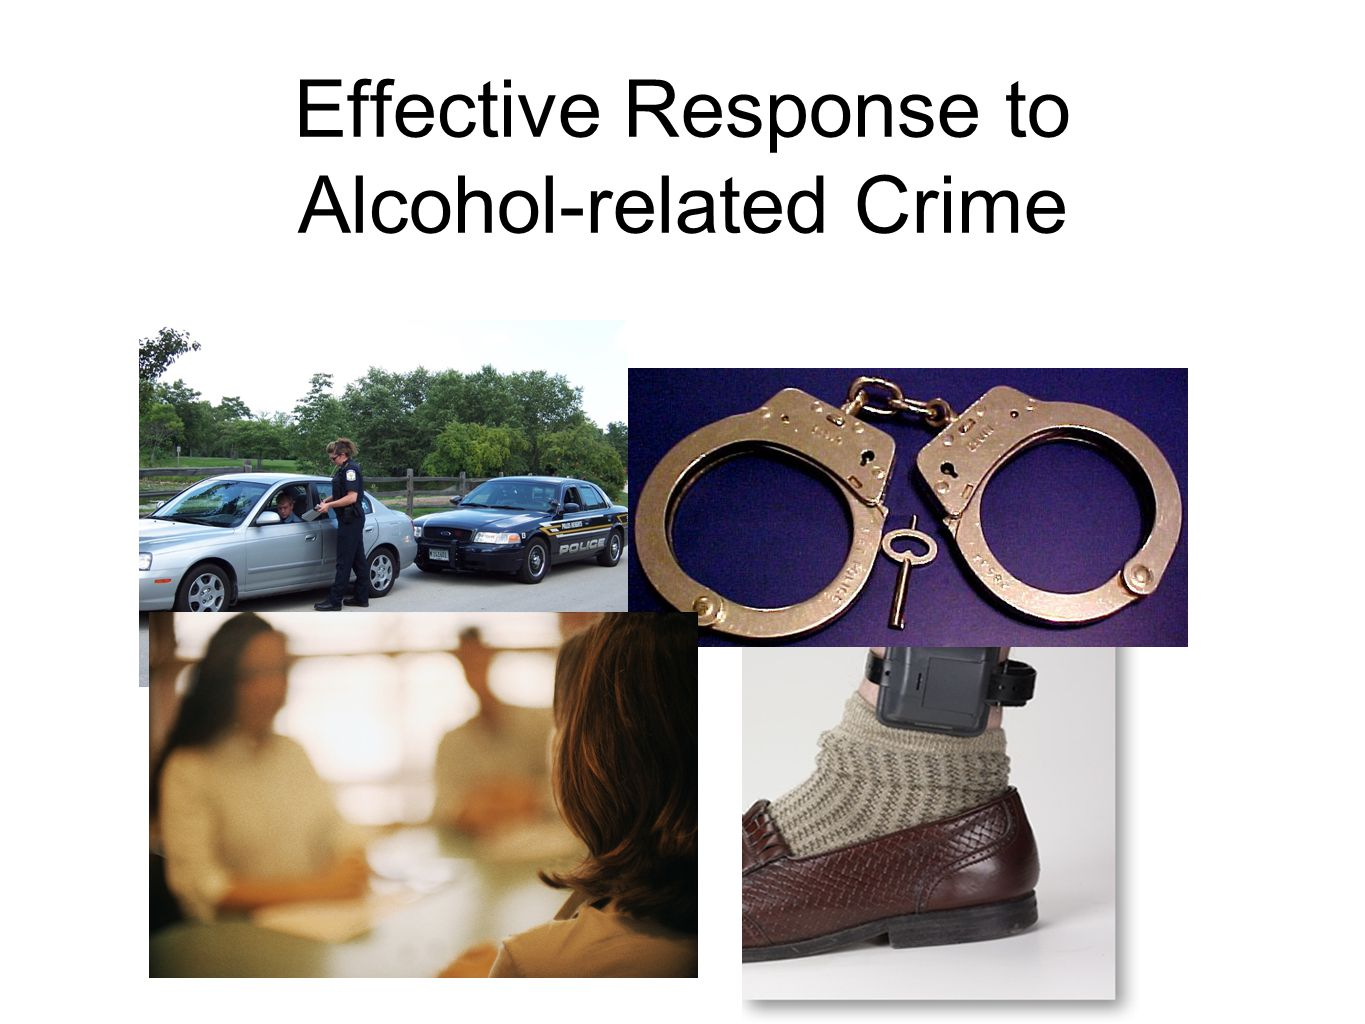 Effective Response to Alcohol-related Crime